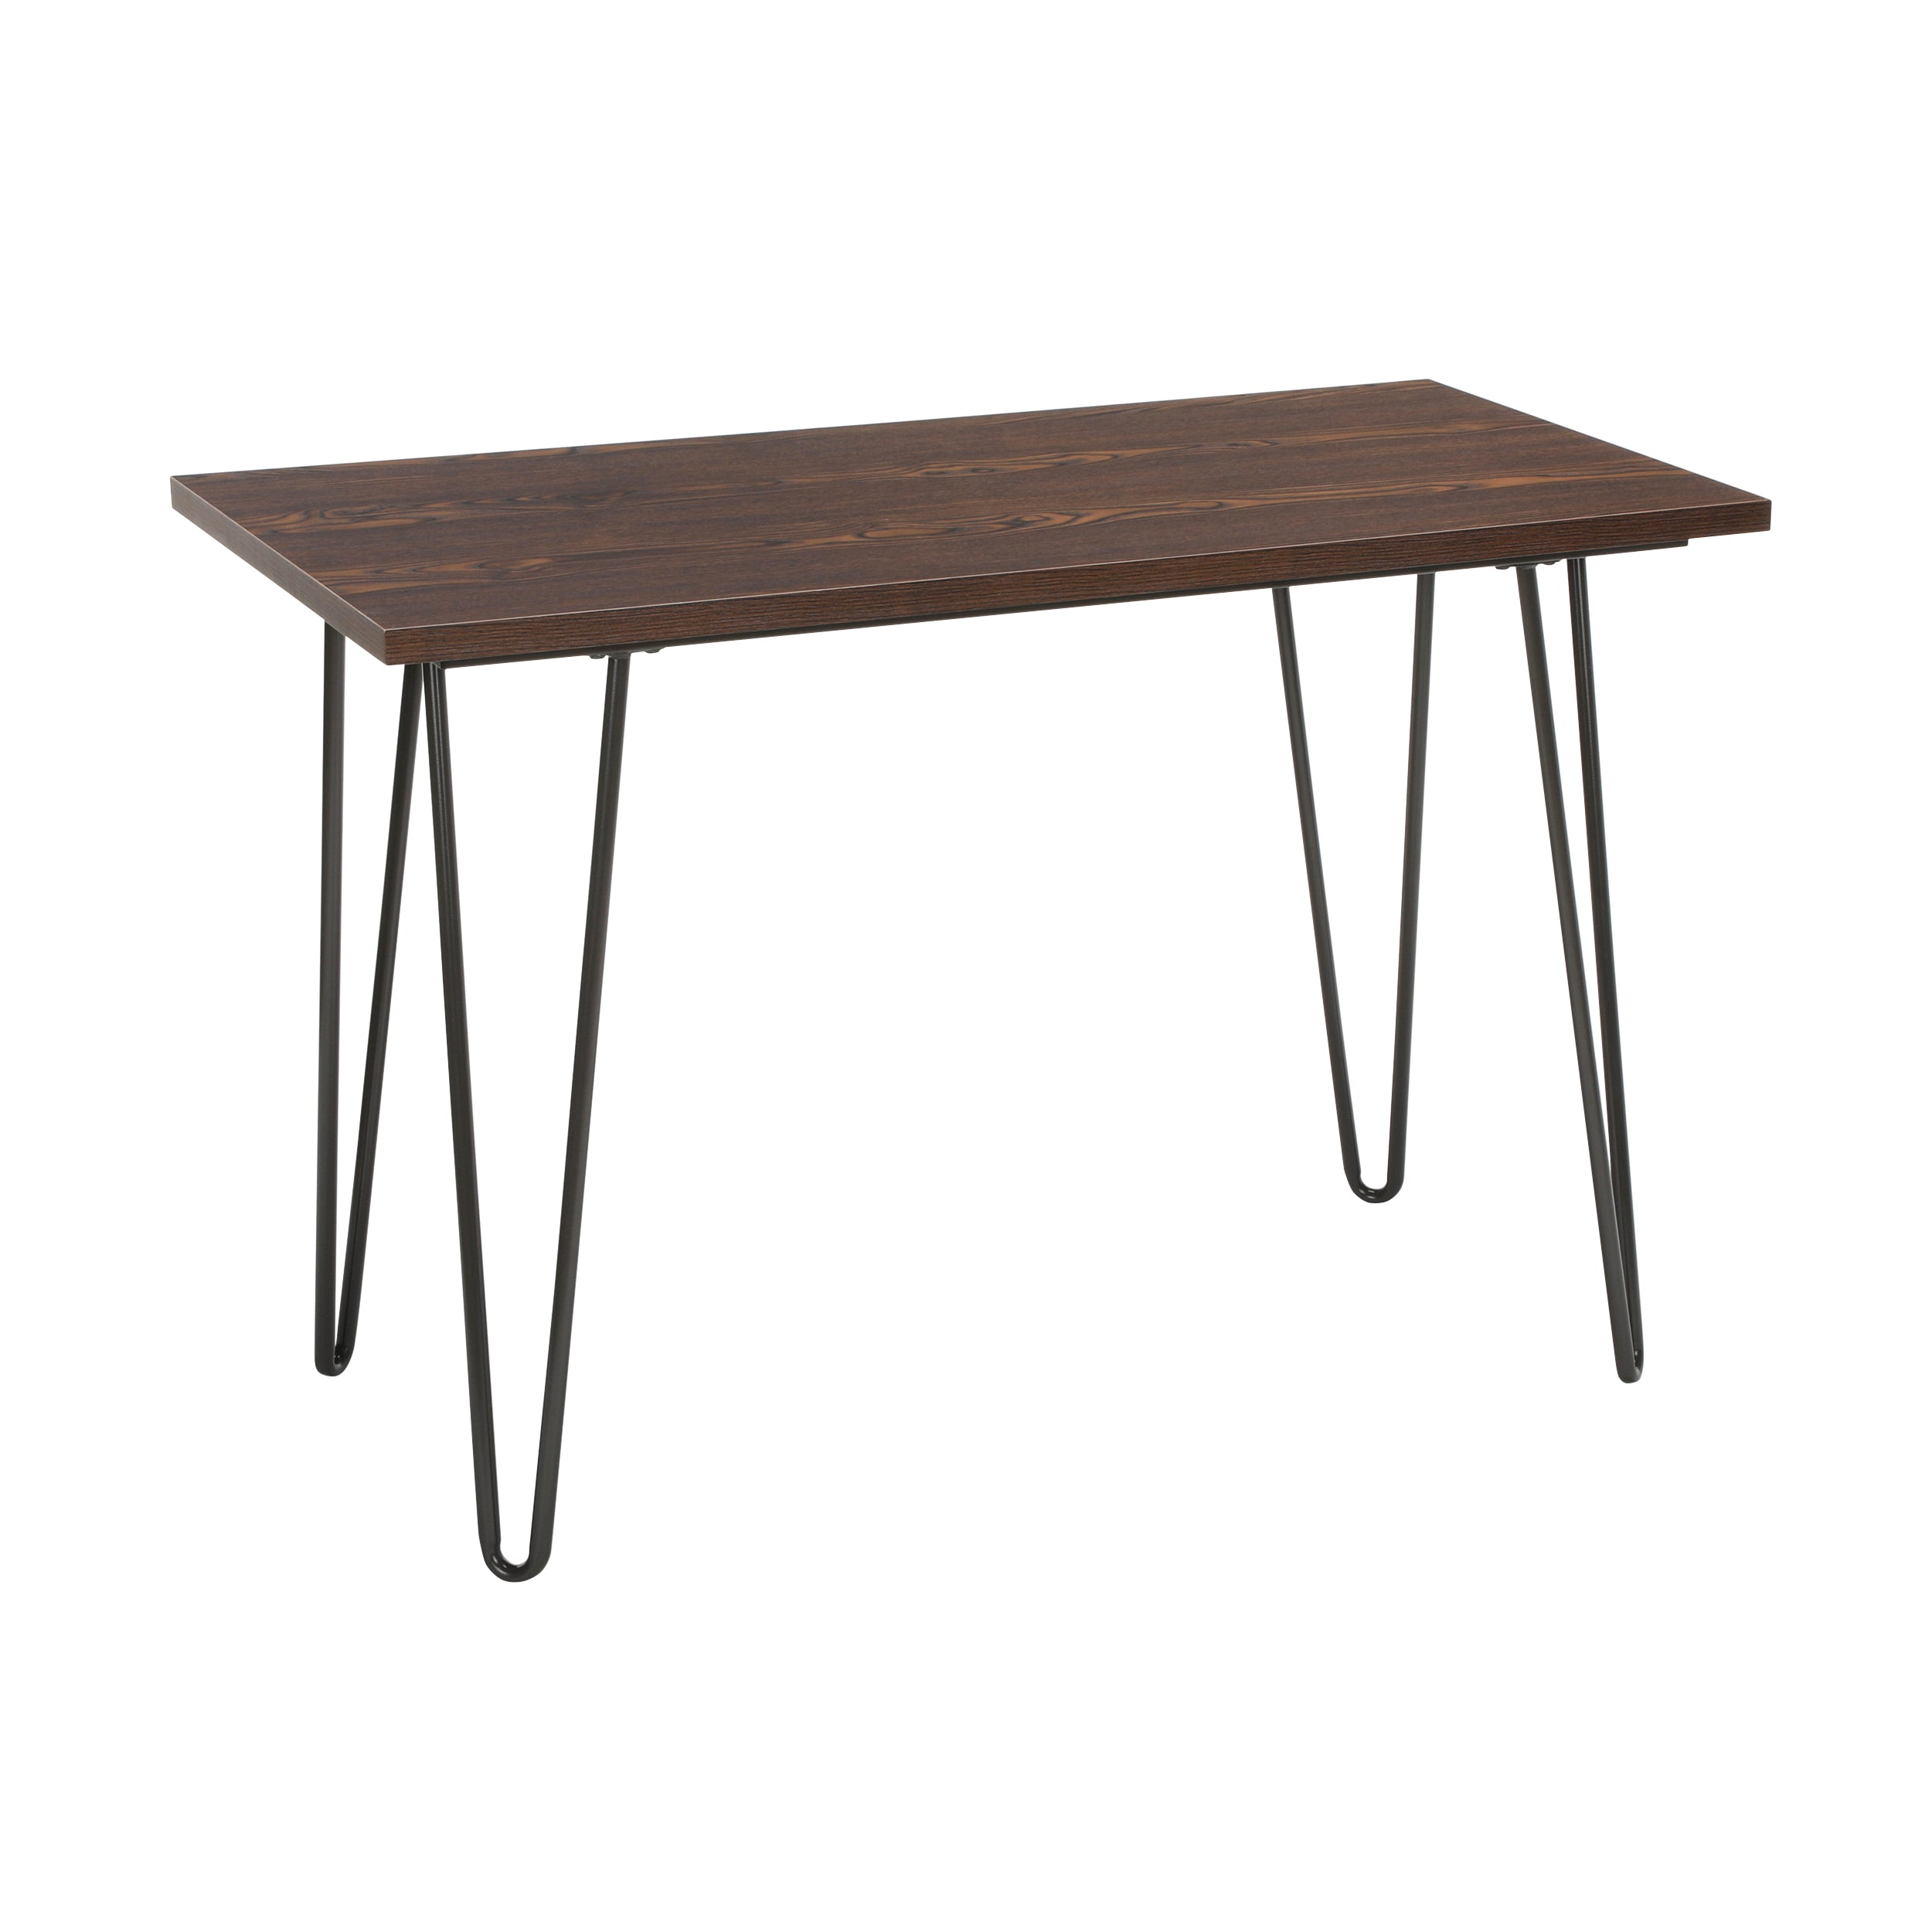 "44"" Home Retro Desk, Writing Desk with Hairpin Legs"